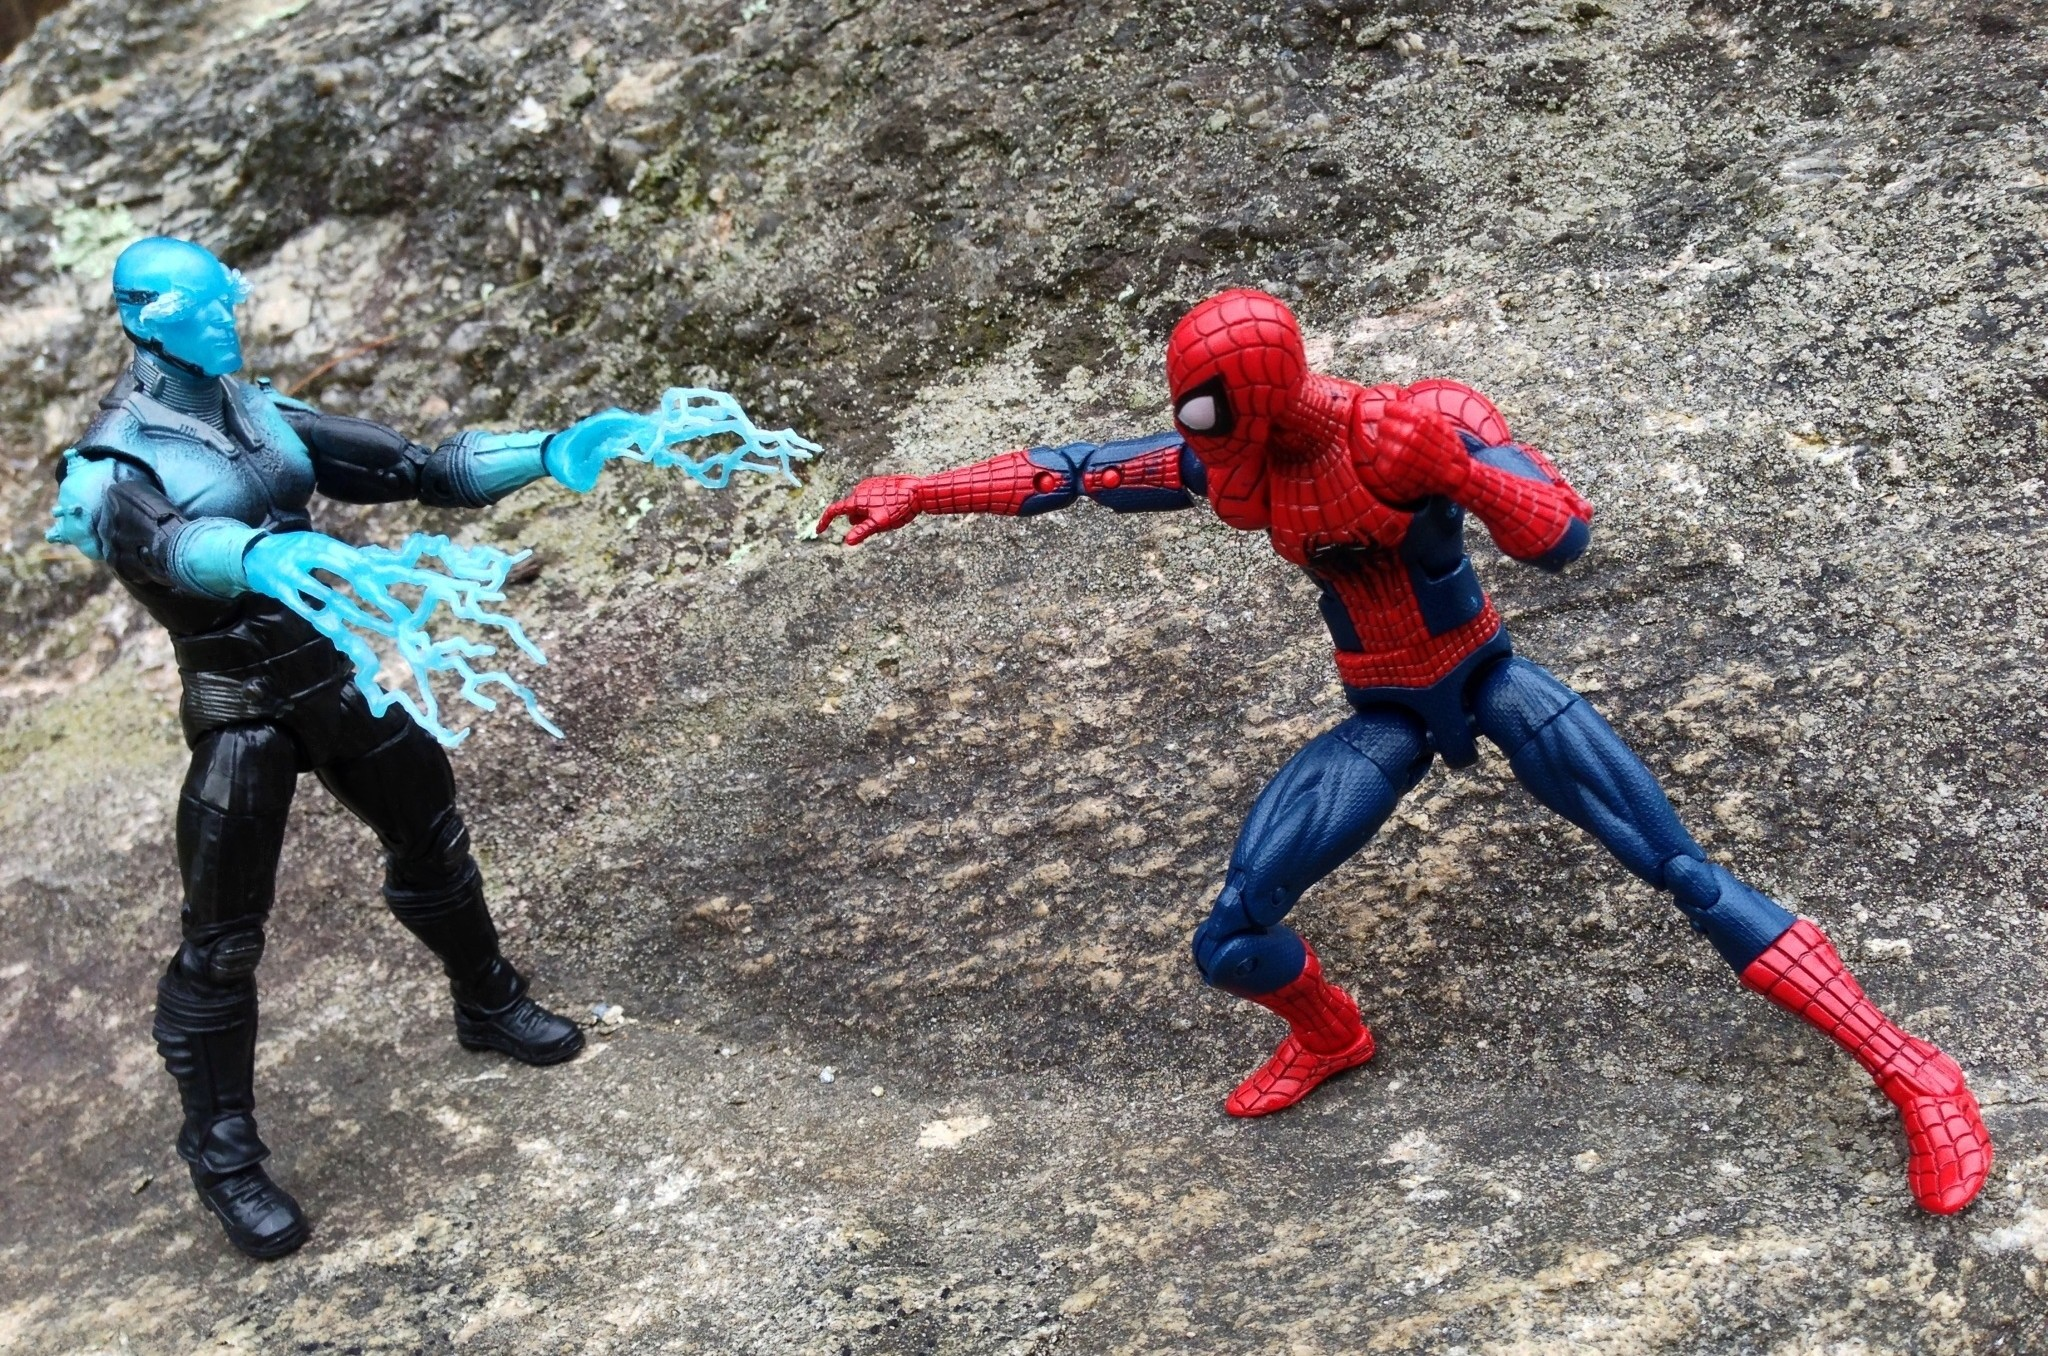 New Spider Man 2 Toys : Amazing spider man marvel legends electro review